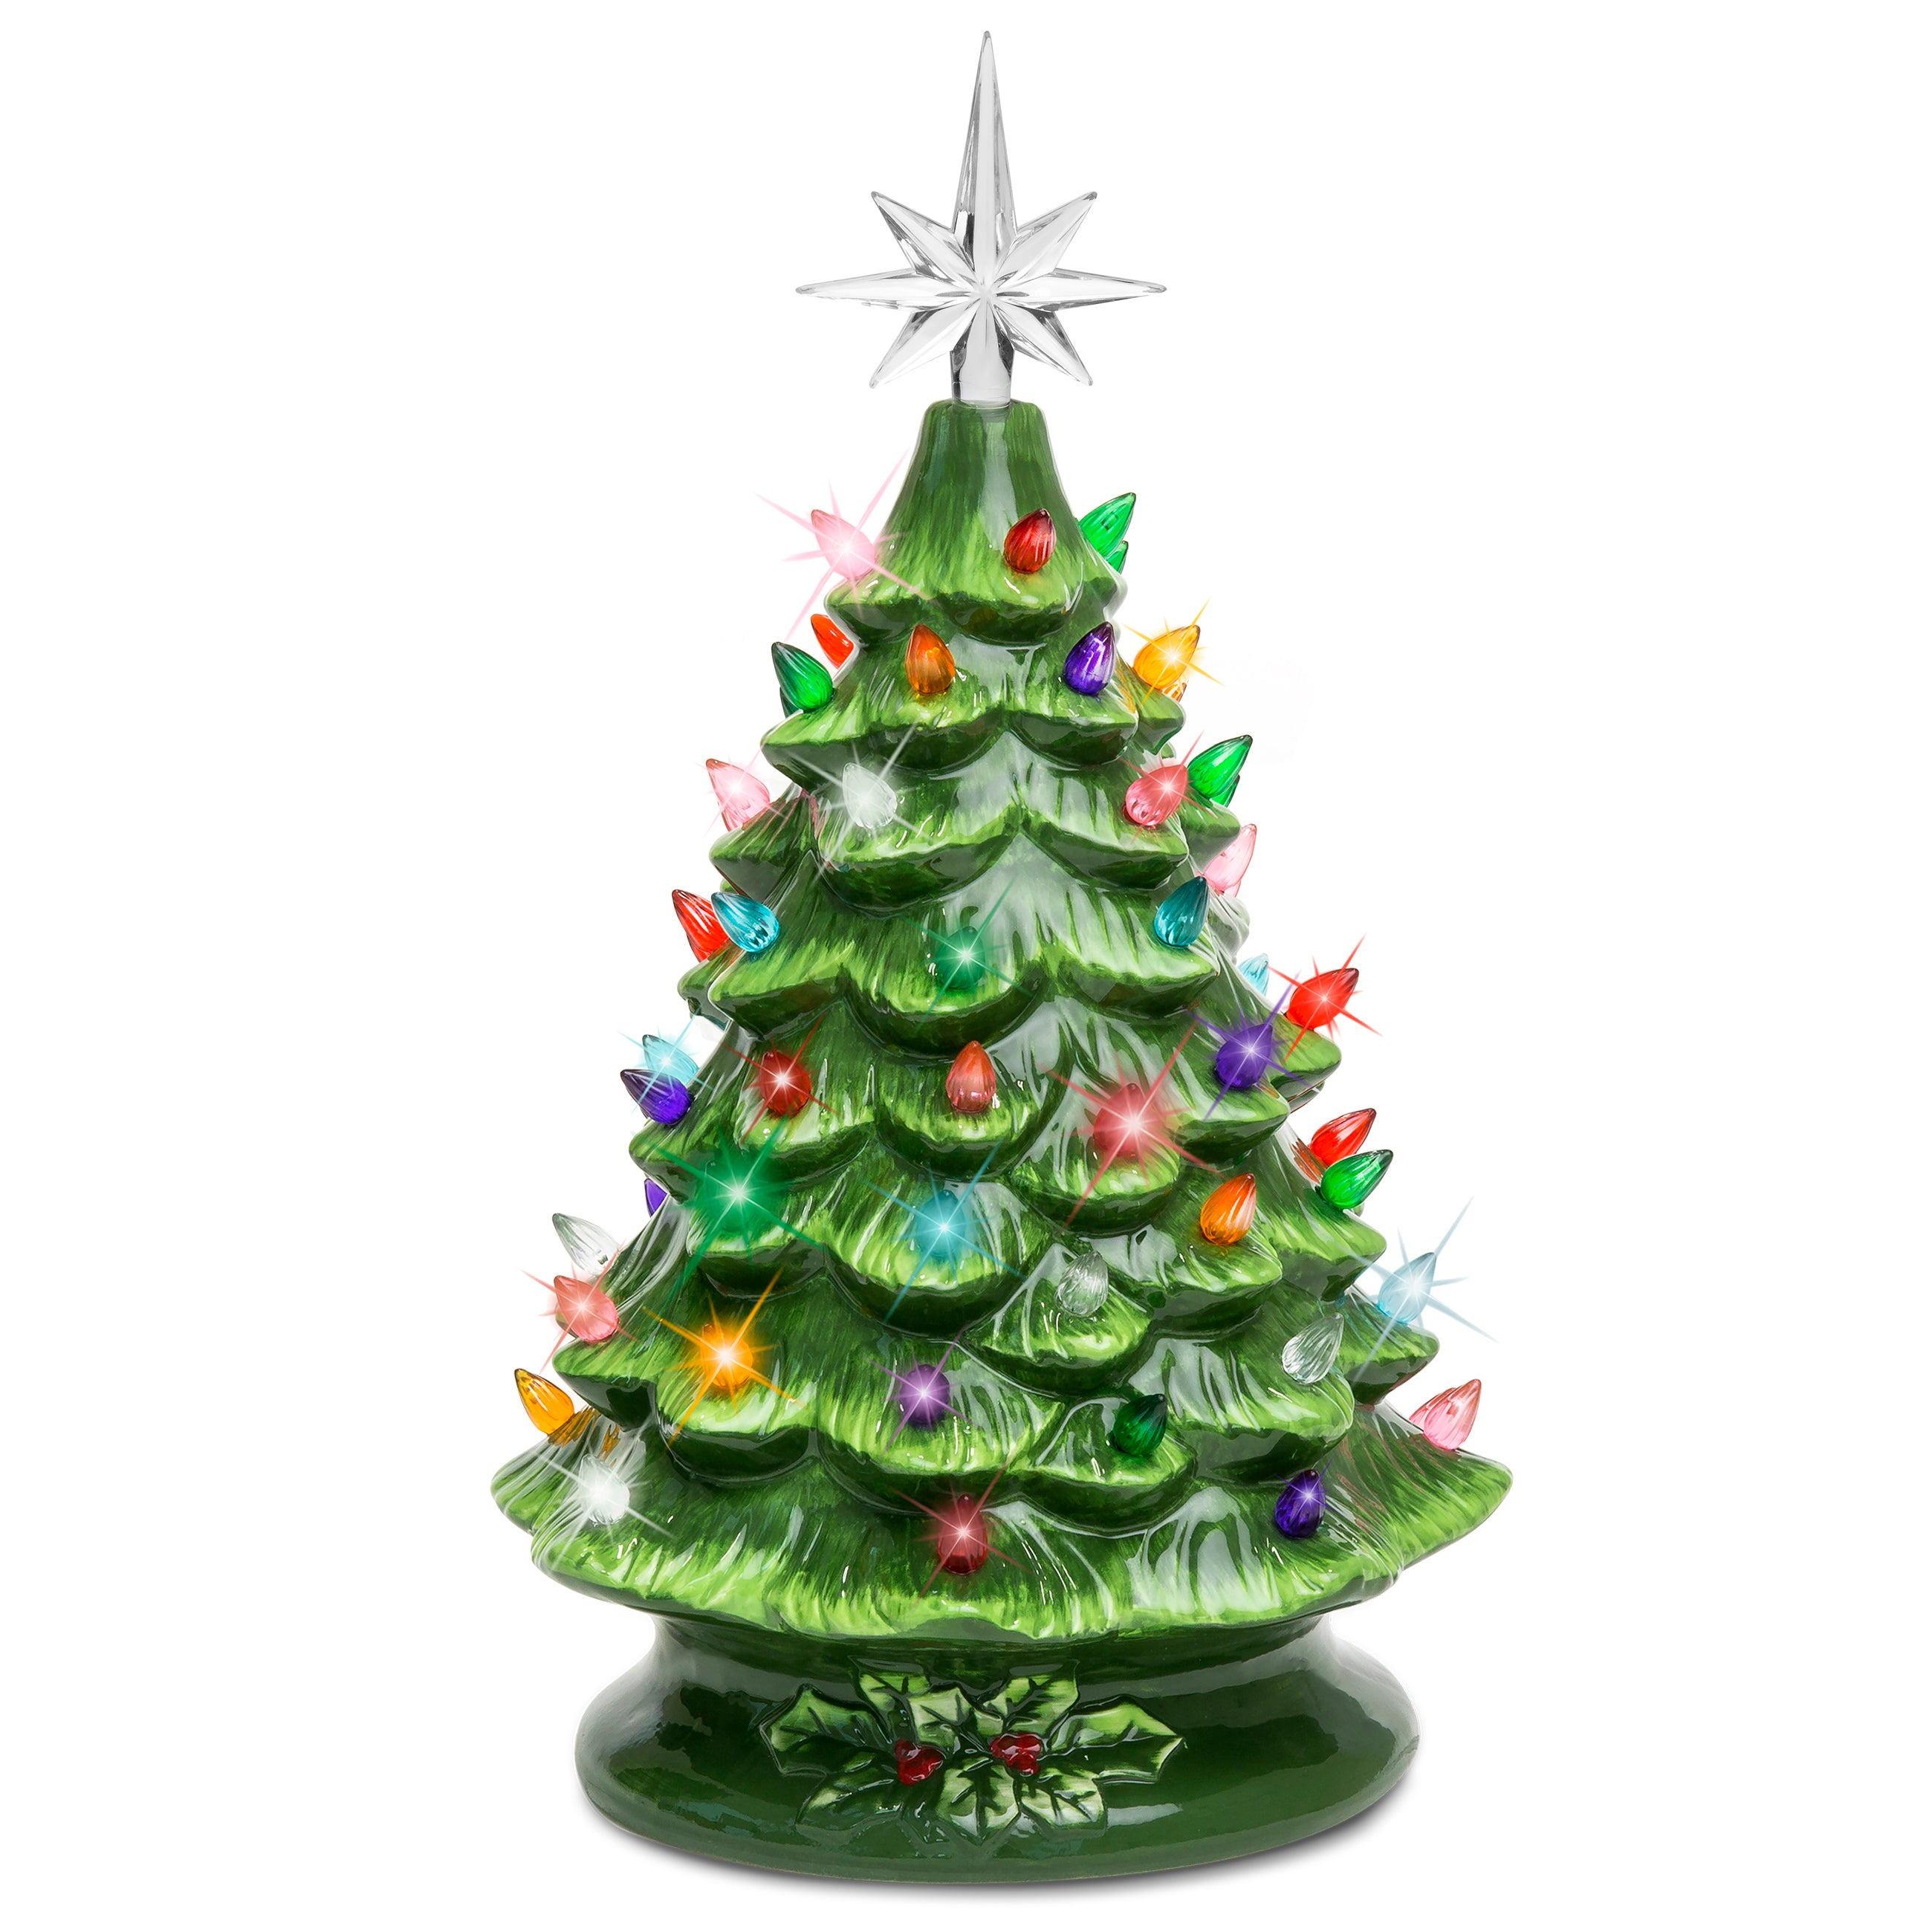 Ceramic Christmas Trees.15in Pre Lit Hand Painted Ceramic Tabletop Christmas Tree W Lights